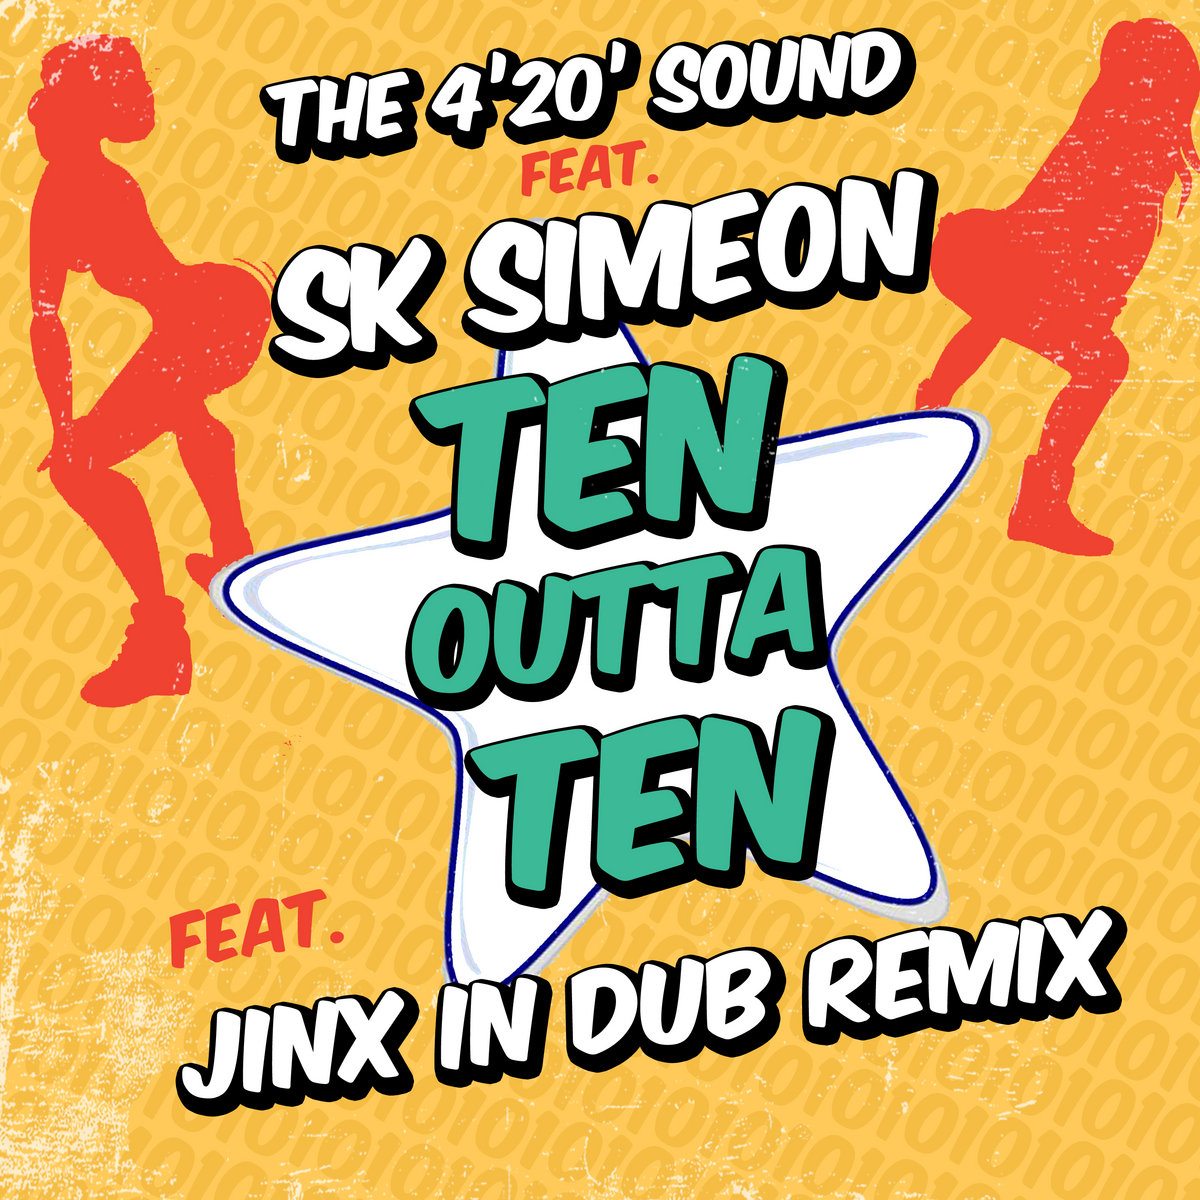 Ten Outta Ten E P (feat  SK Simeon) | The 4'20' Sound